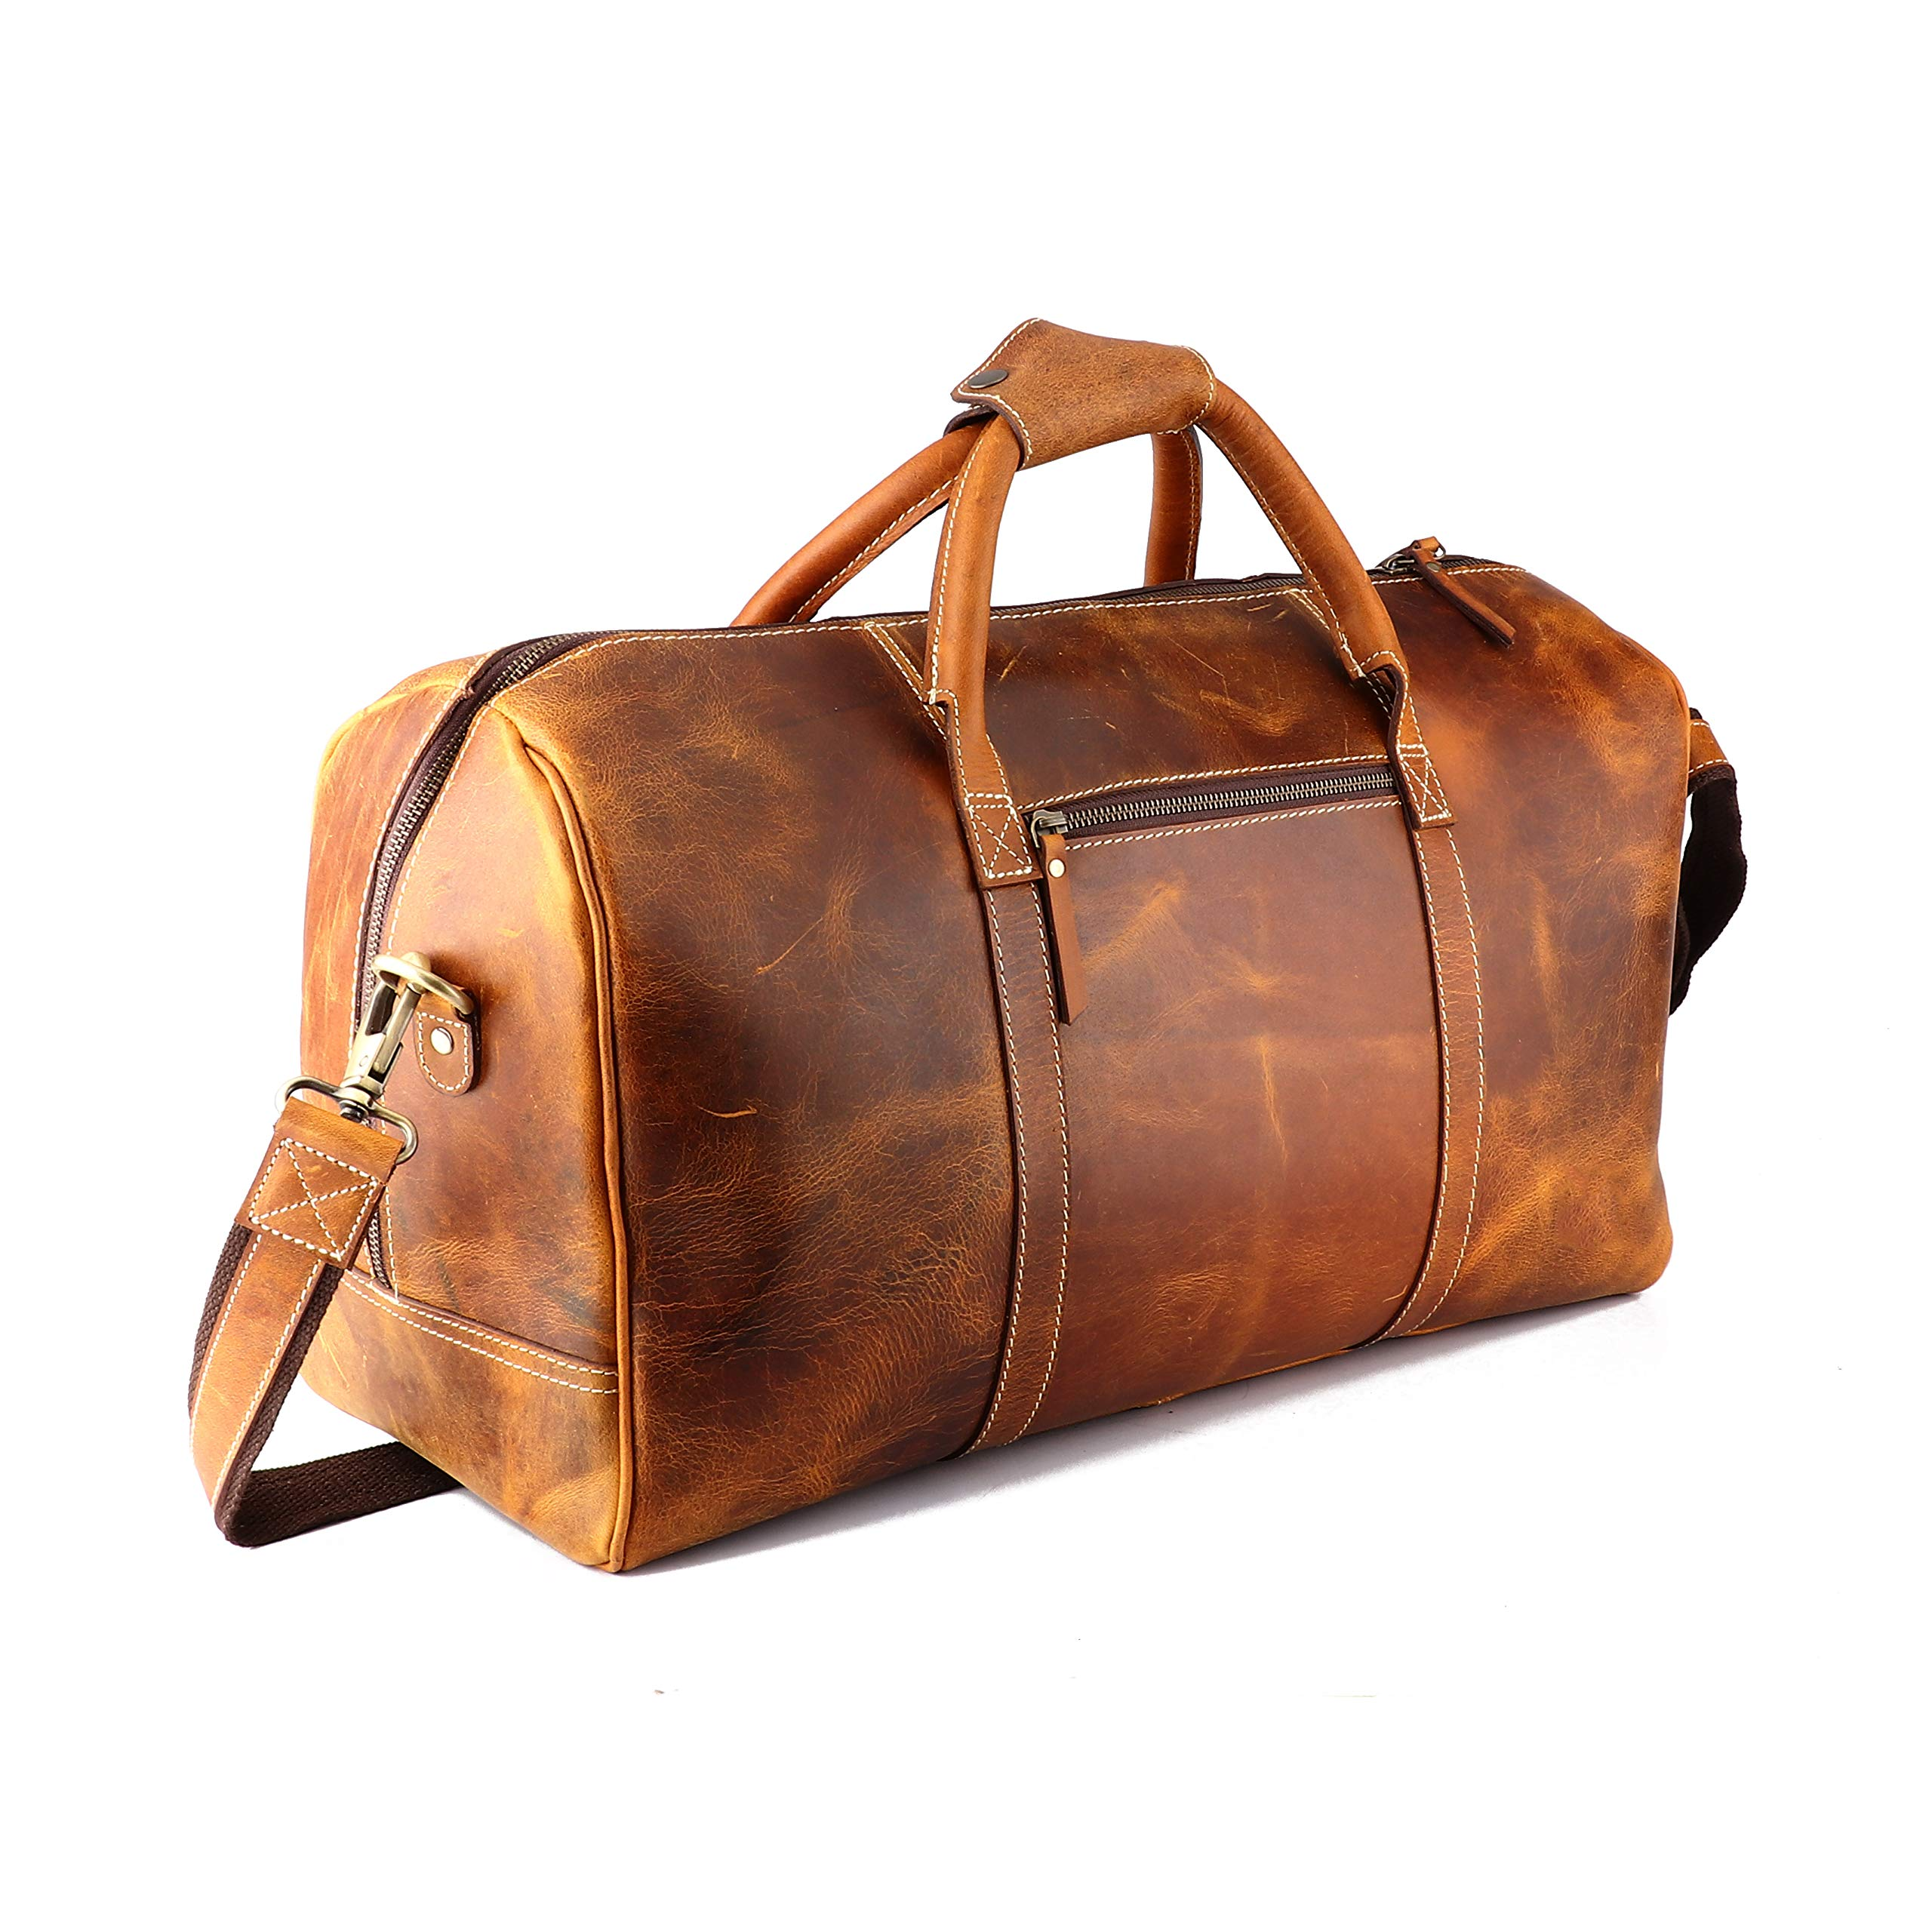 Leather Castle Genuine Vintage Men's Duffel Sports Gym, Travel, Carry-on Luggage Bag, Cinnamon Brown